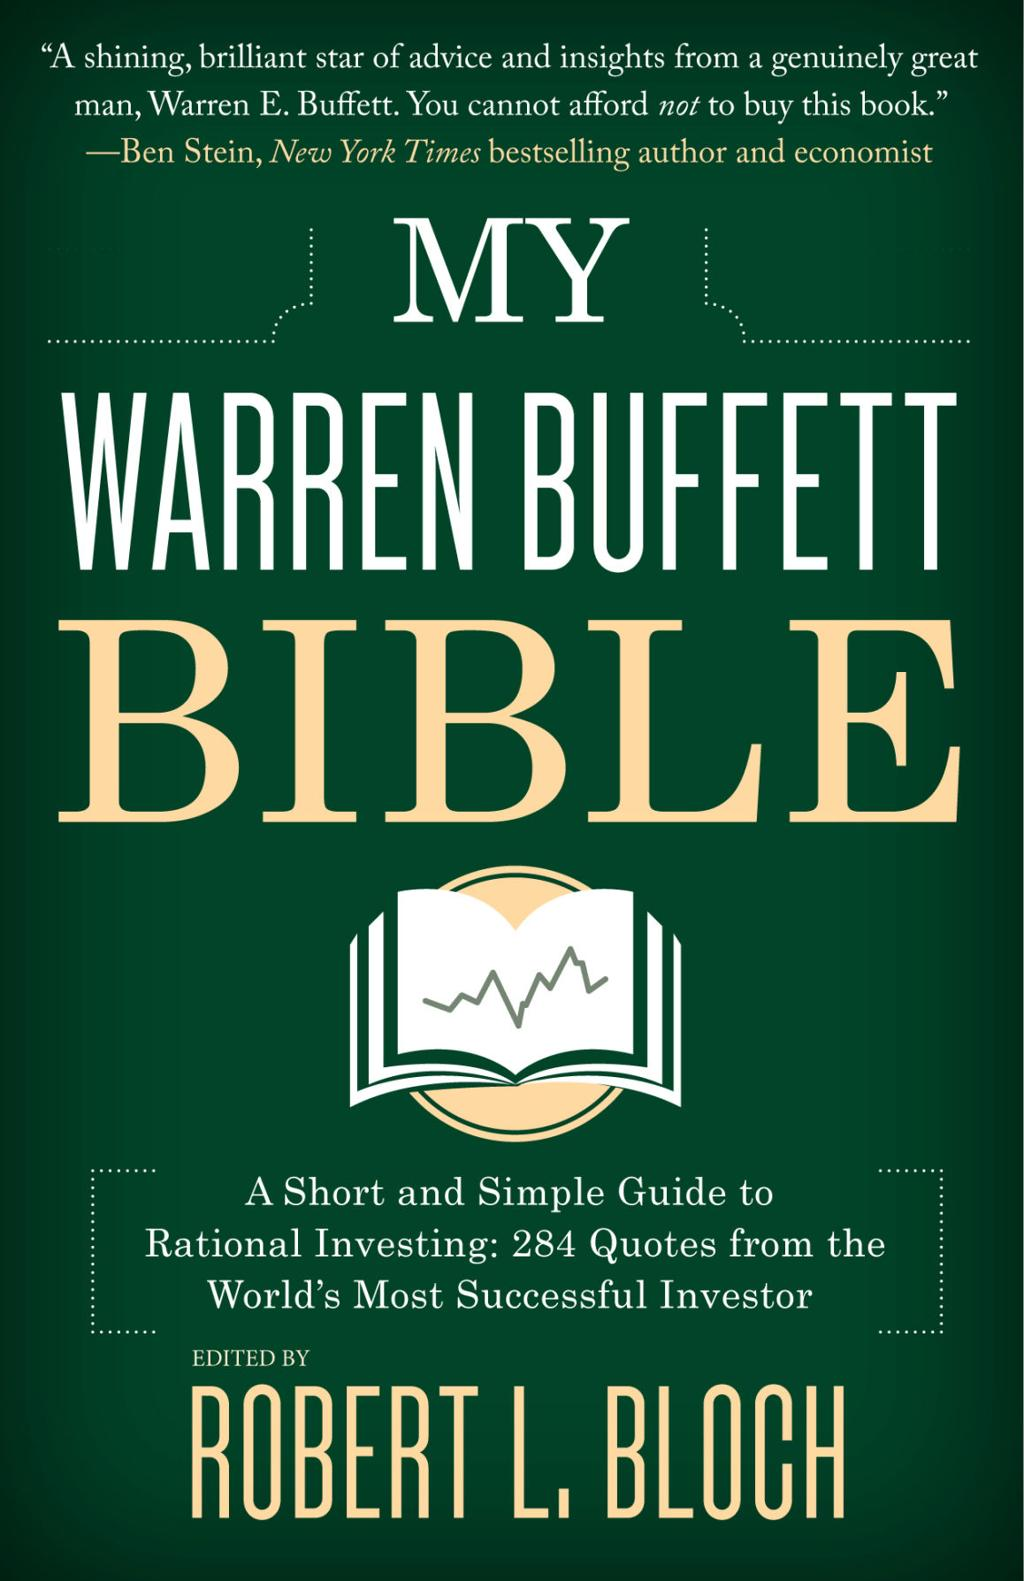 Warren Watch Looking for the best bits of Buffett wisdom